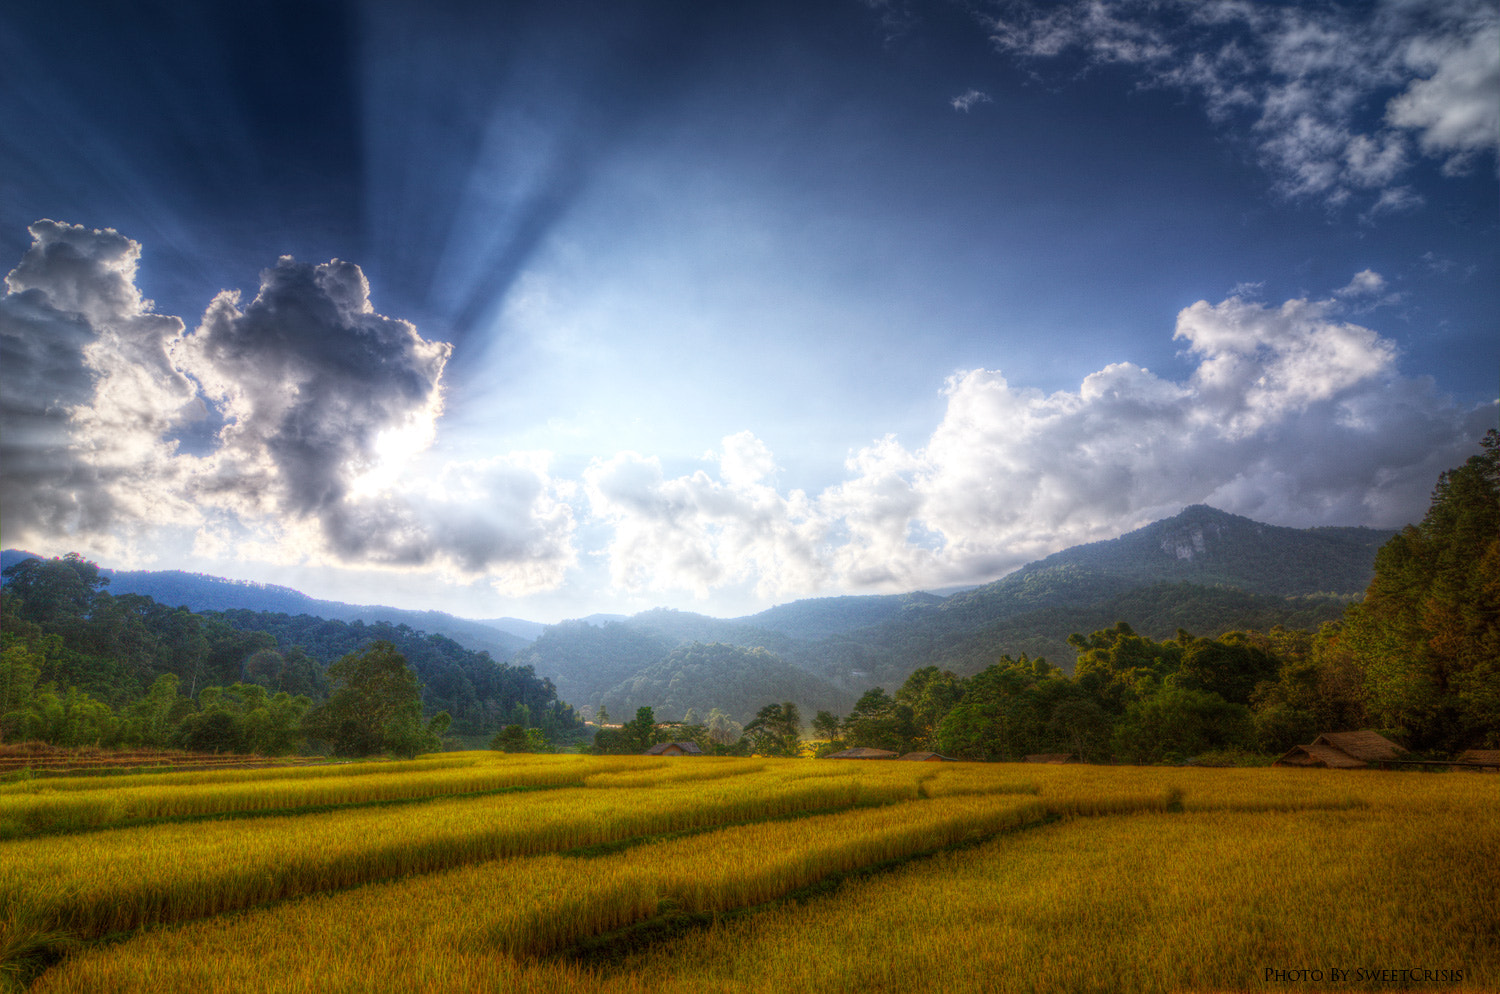 Photograph Farmland by Peerasith Chaisanit on 500px